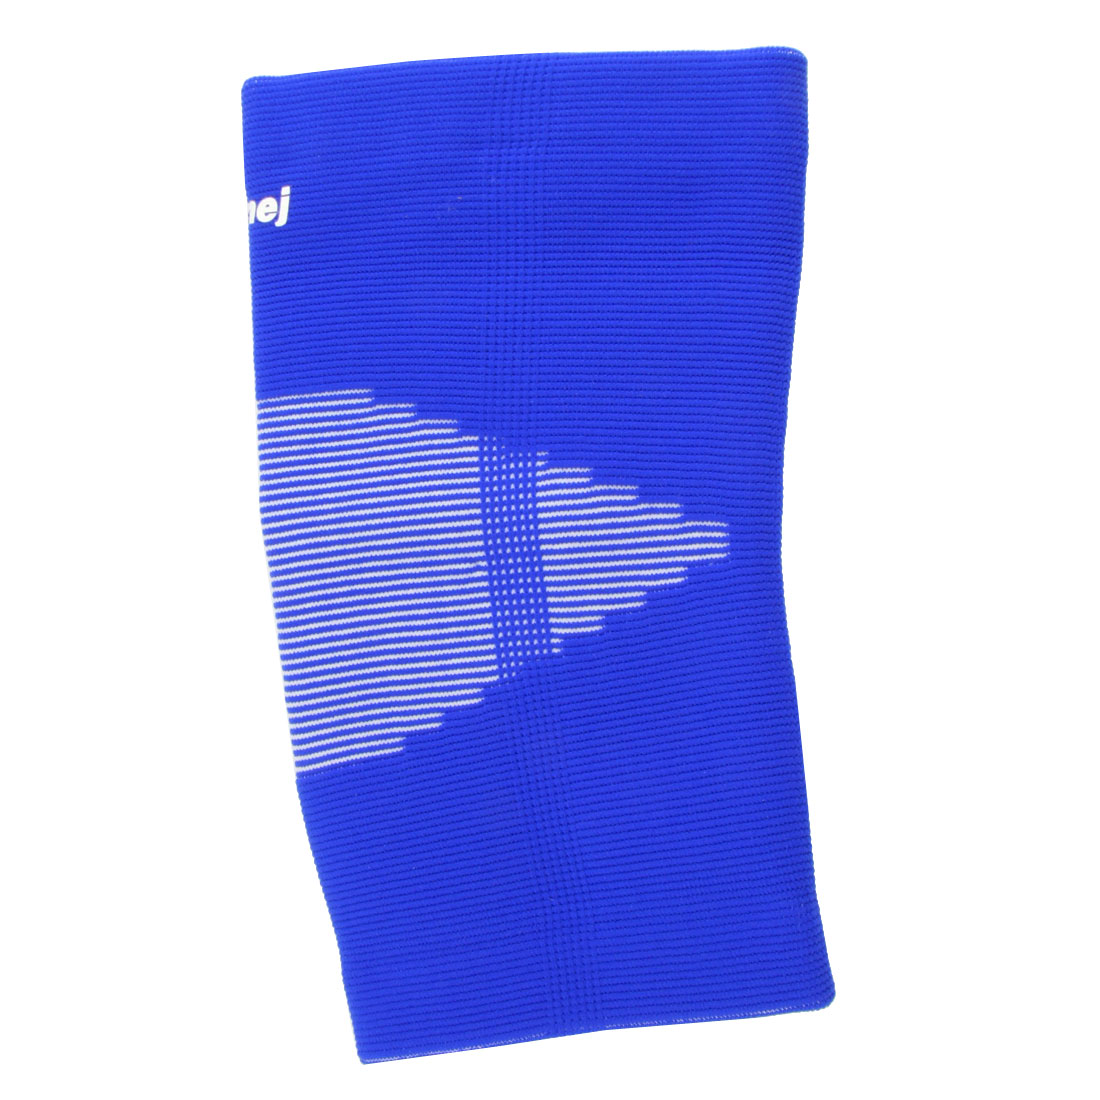 Stretchy Sports Training Leg Compression Knee Brace Support Protector Sleeve Size M